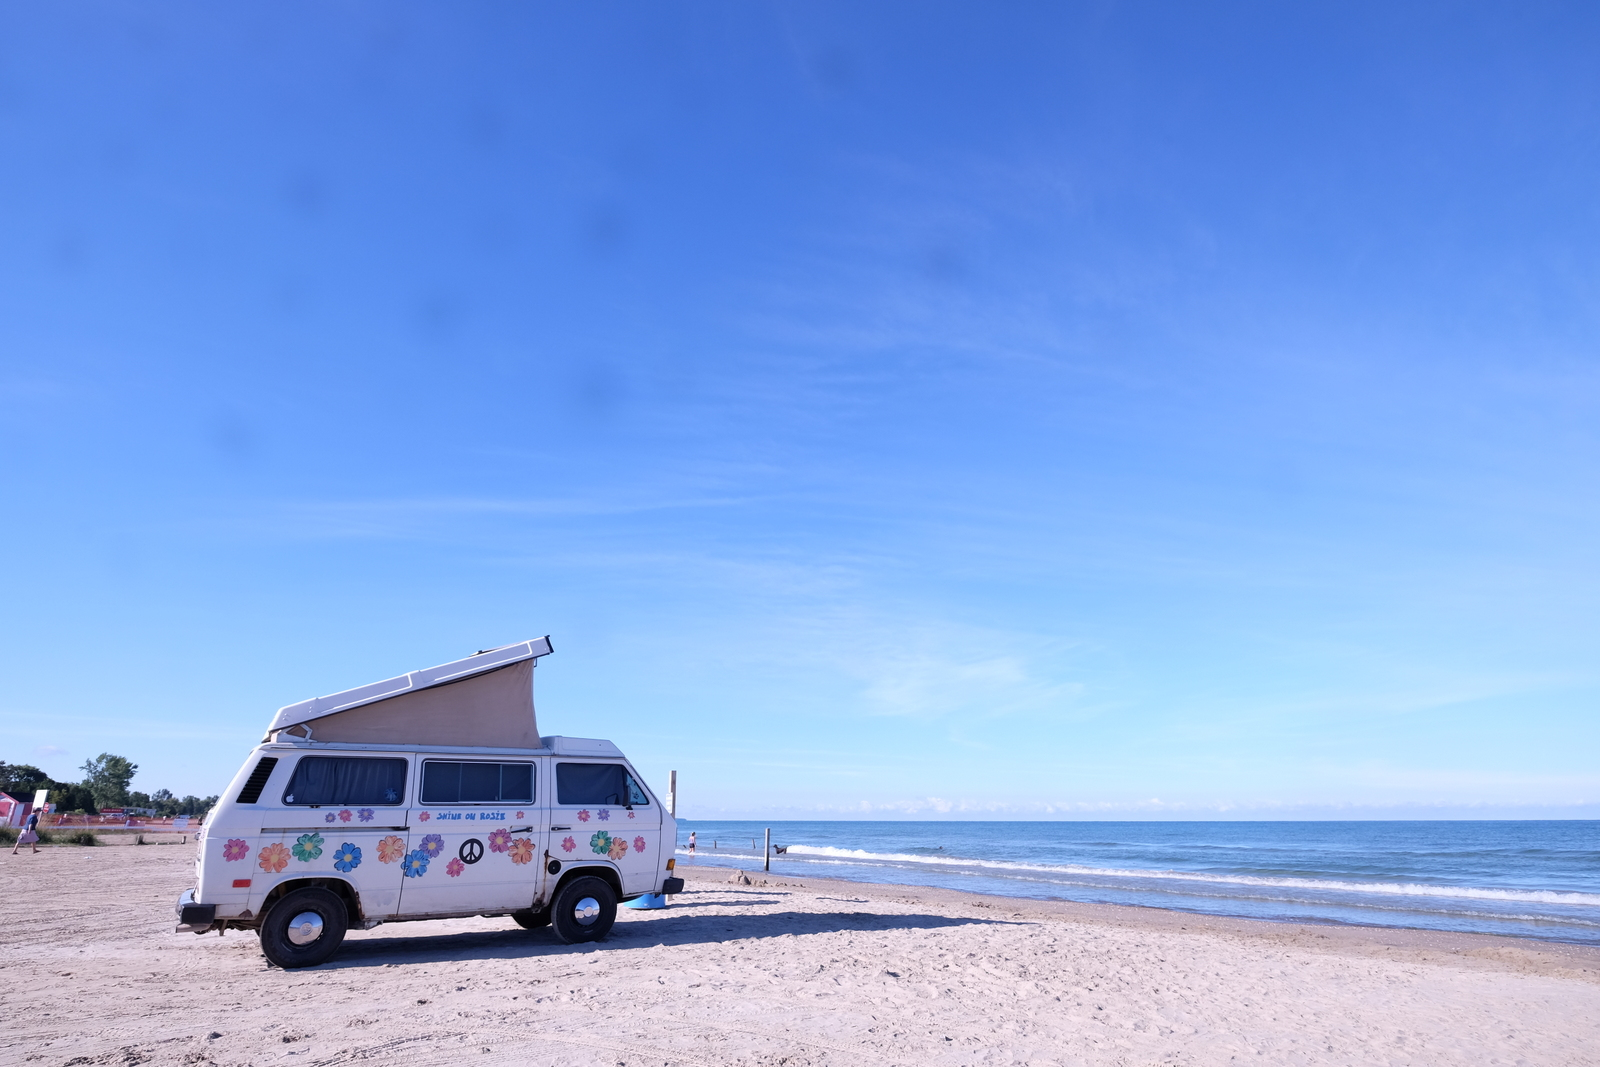 Sauble Beach is a short drive from Lion's Head and also from Owen Sound. It's one of the great beaches of Canada, even if you don't own a cool VW van. JIM BYERS PHOTO